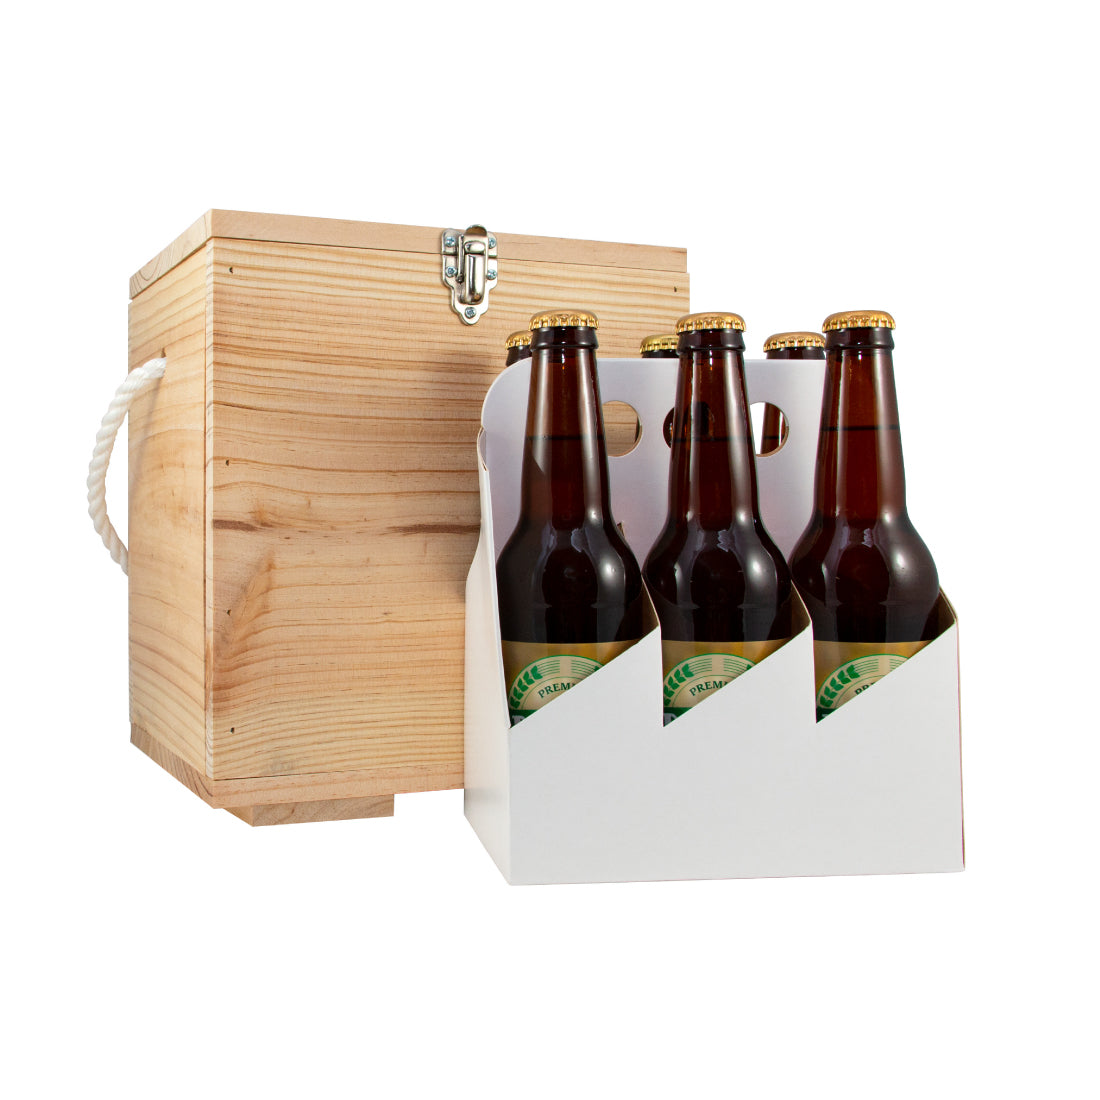 Craft Lager - Wooden Beer Box - 330ml- 6 pack